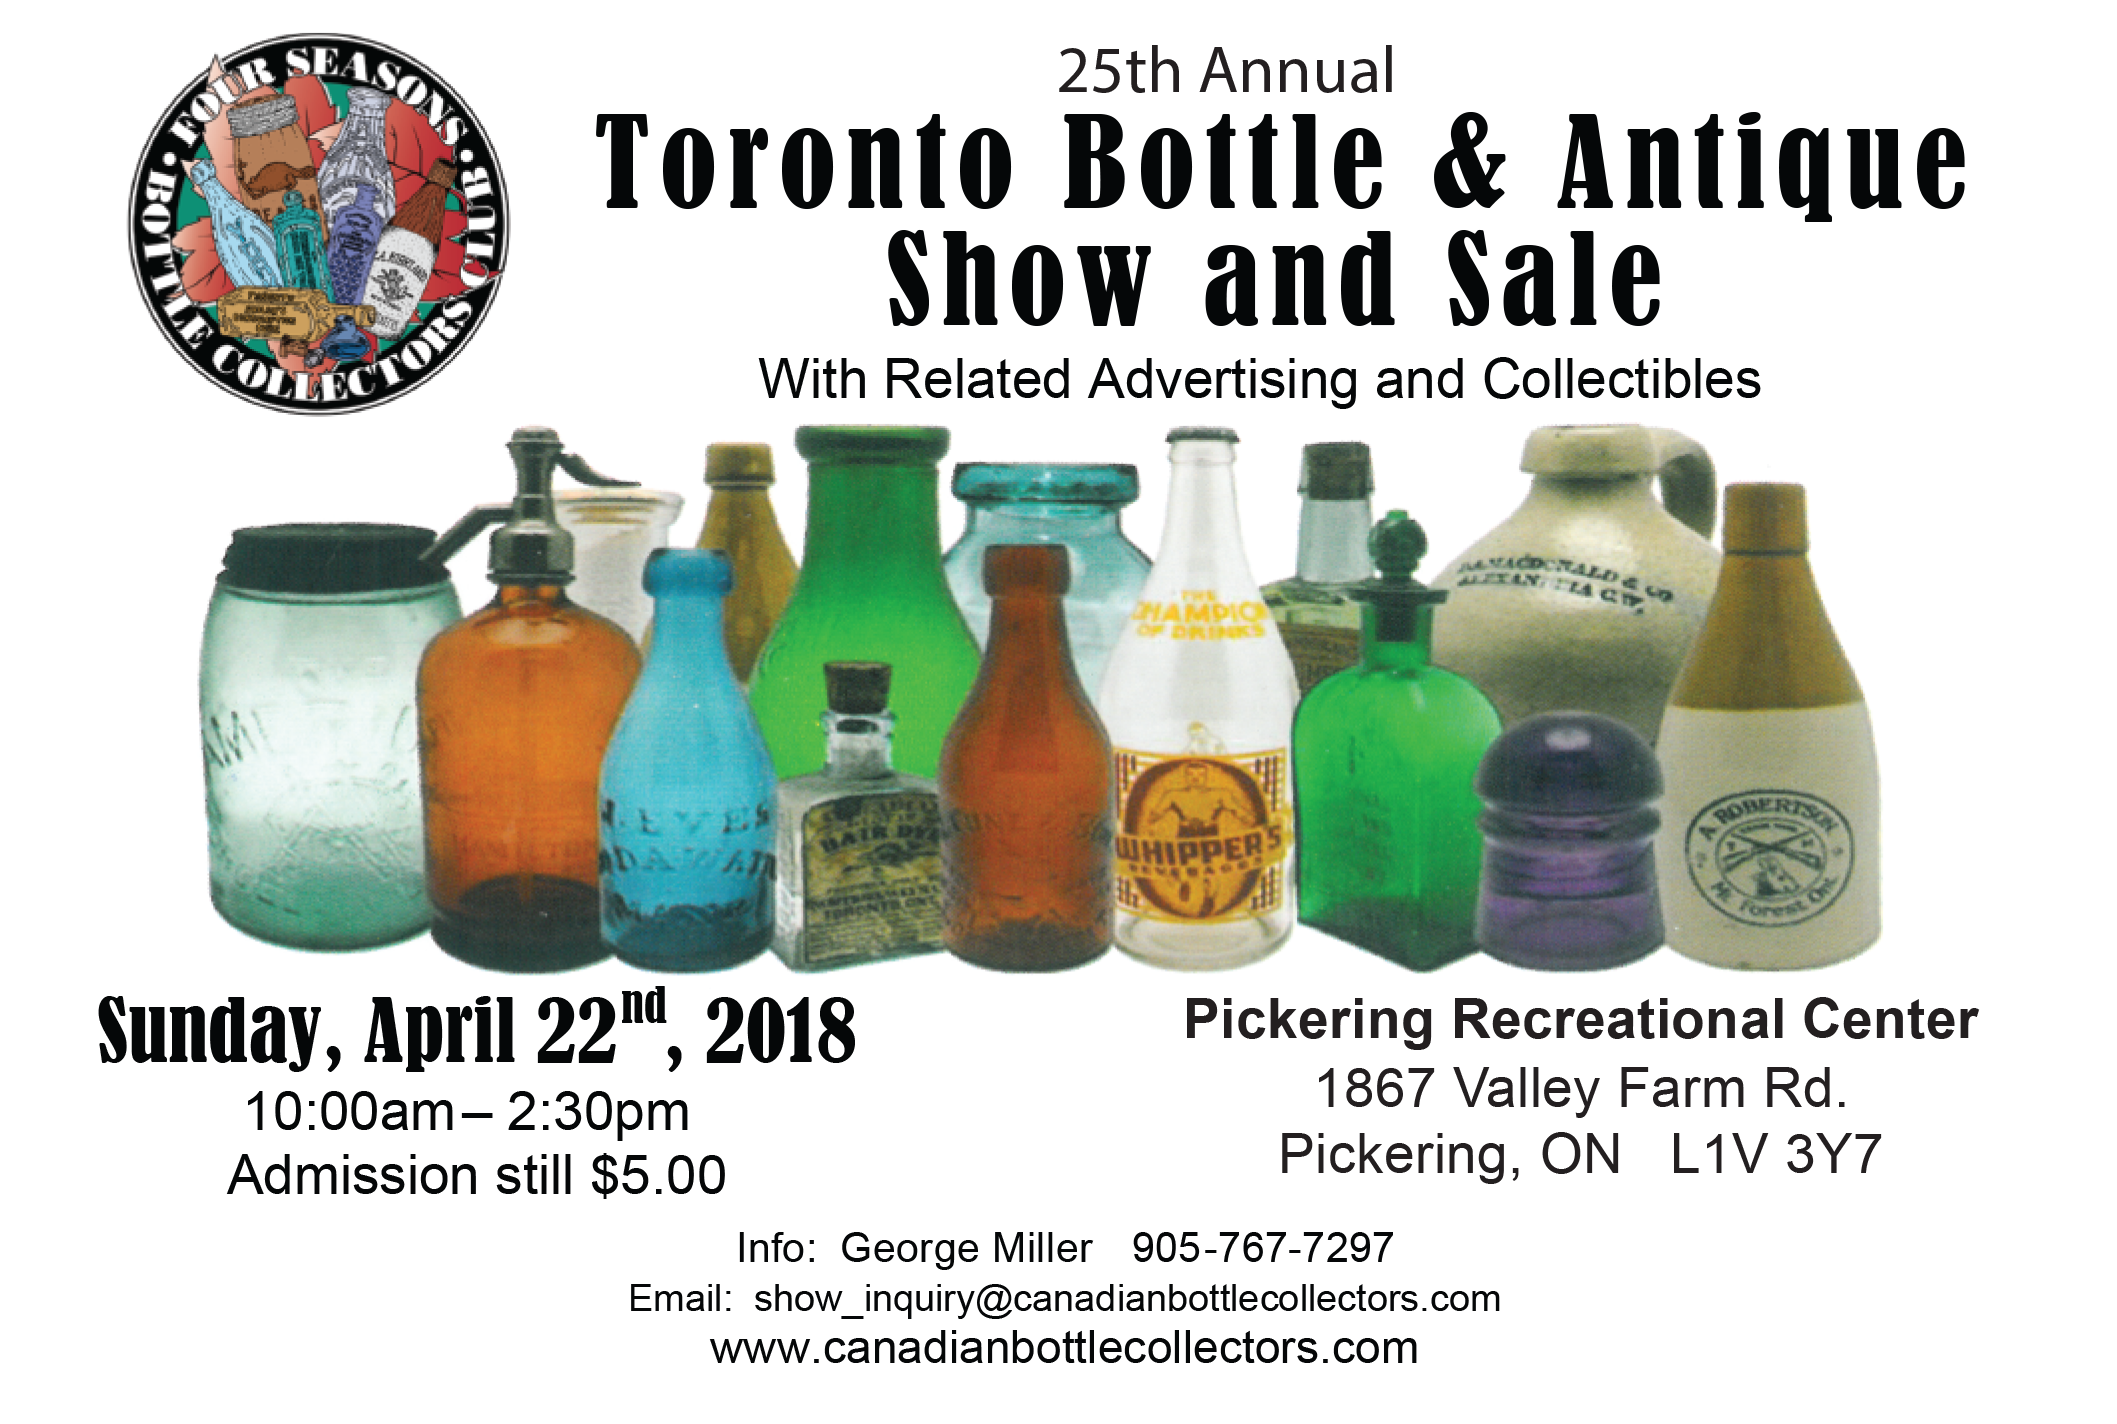 26th Annual Toronto Bottle and Antique Show and Sale